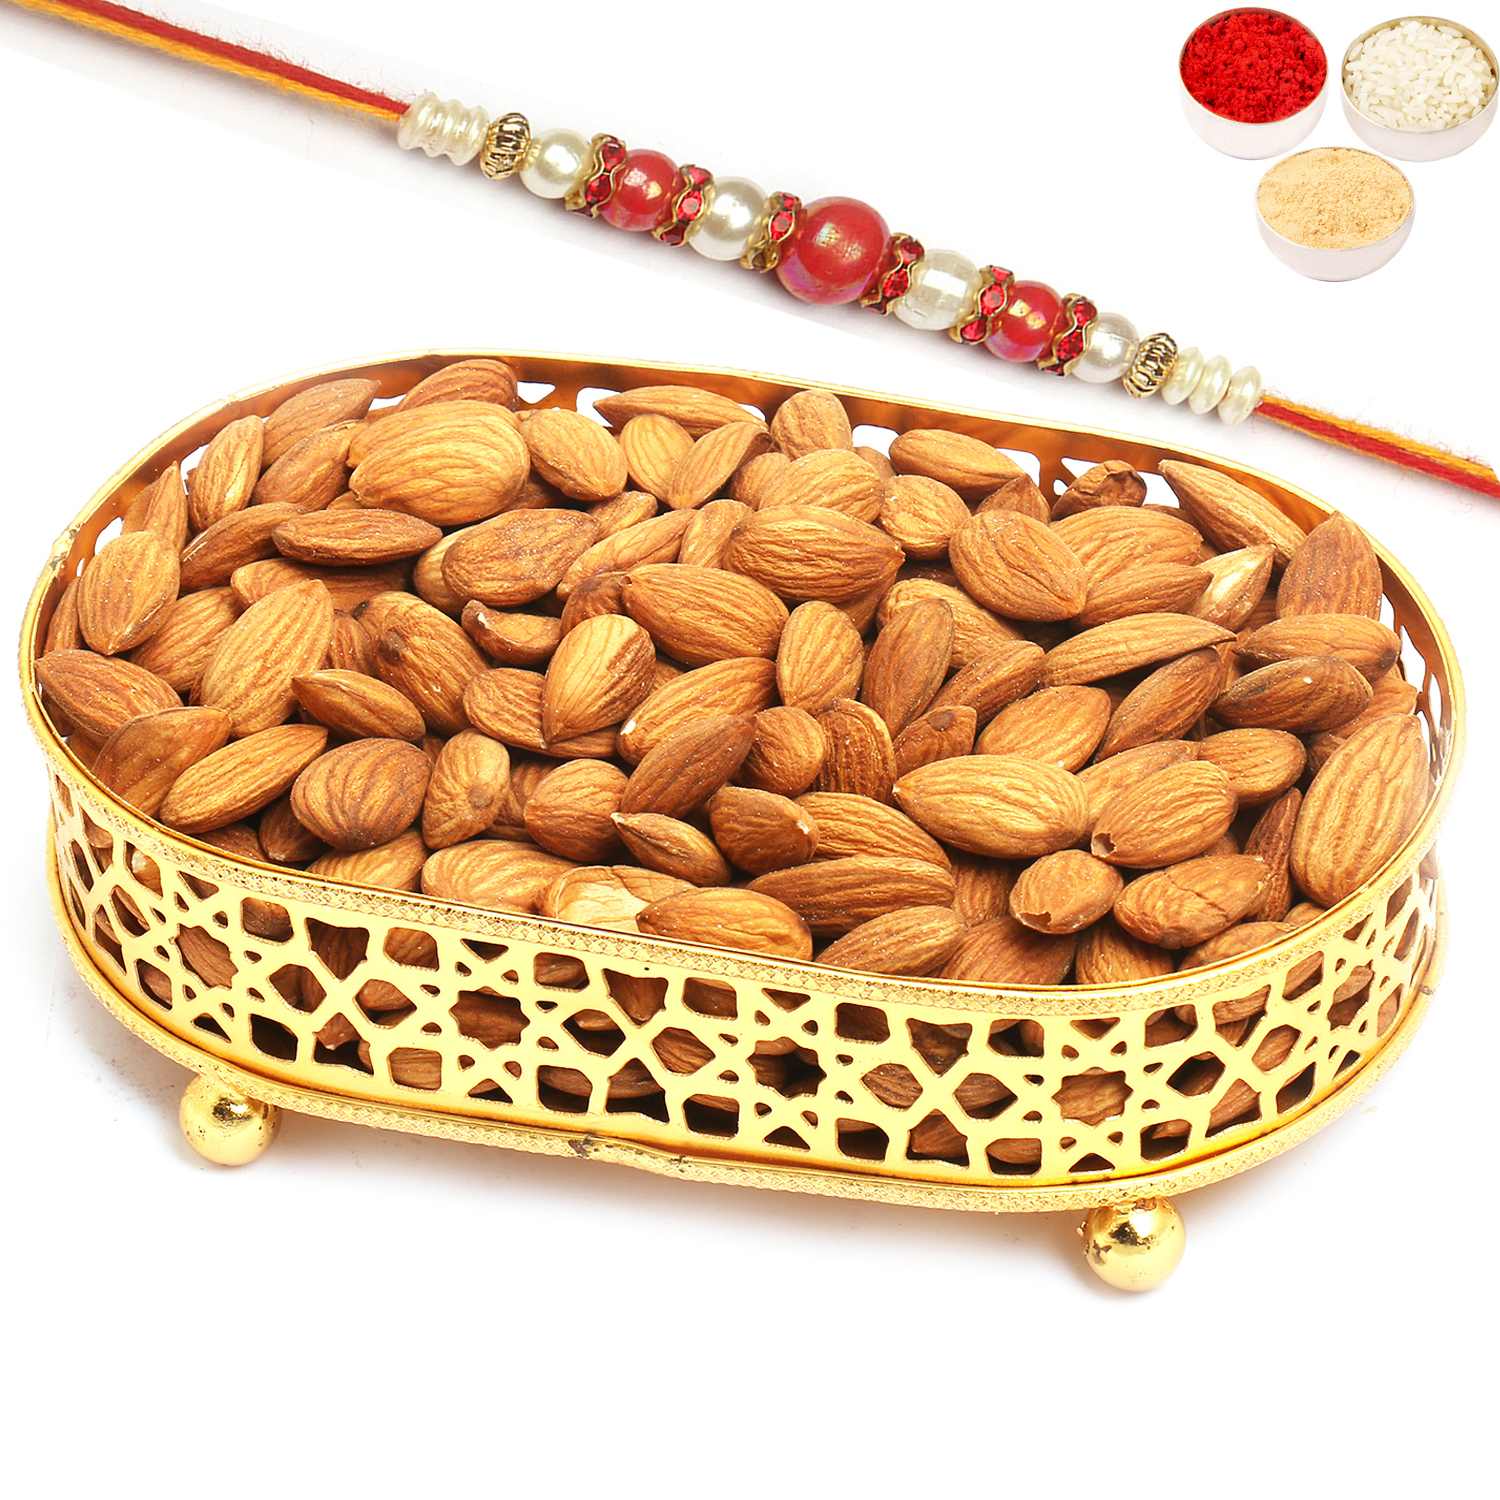 Golden Small Metal Tray filled with Almonds with Red Pearl Rakhi